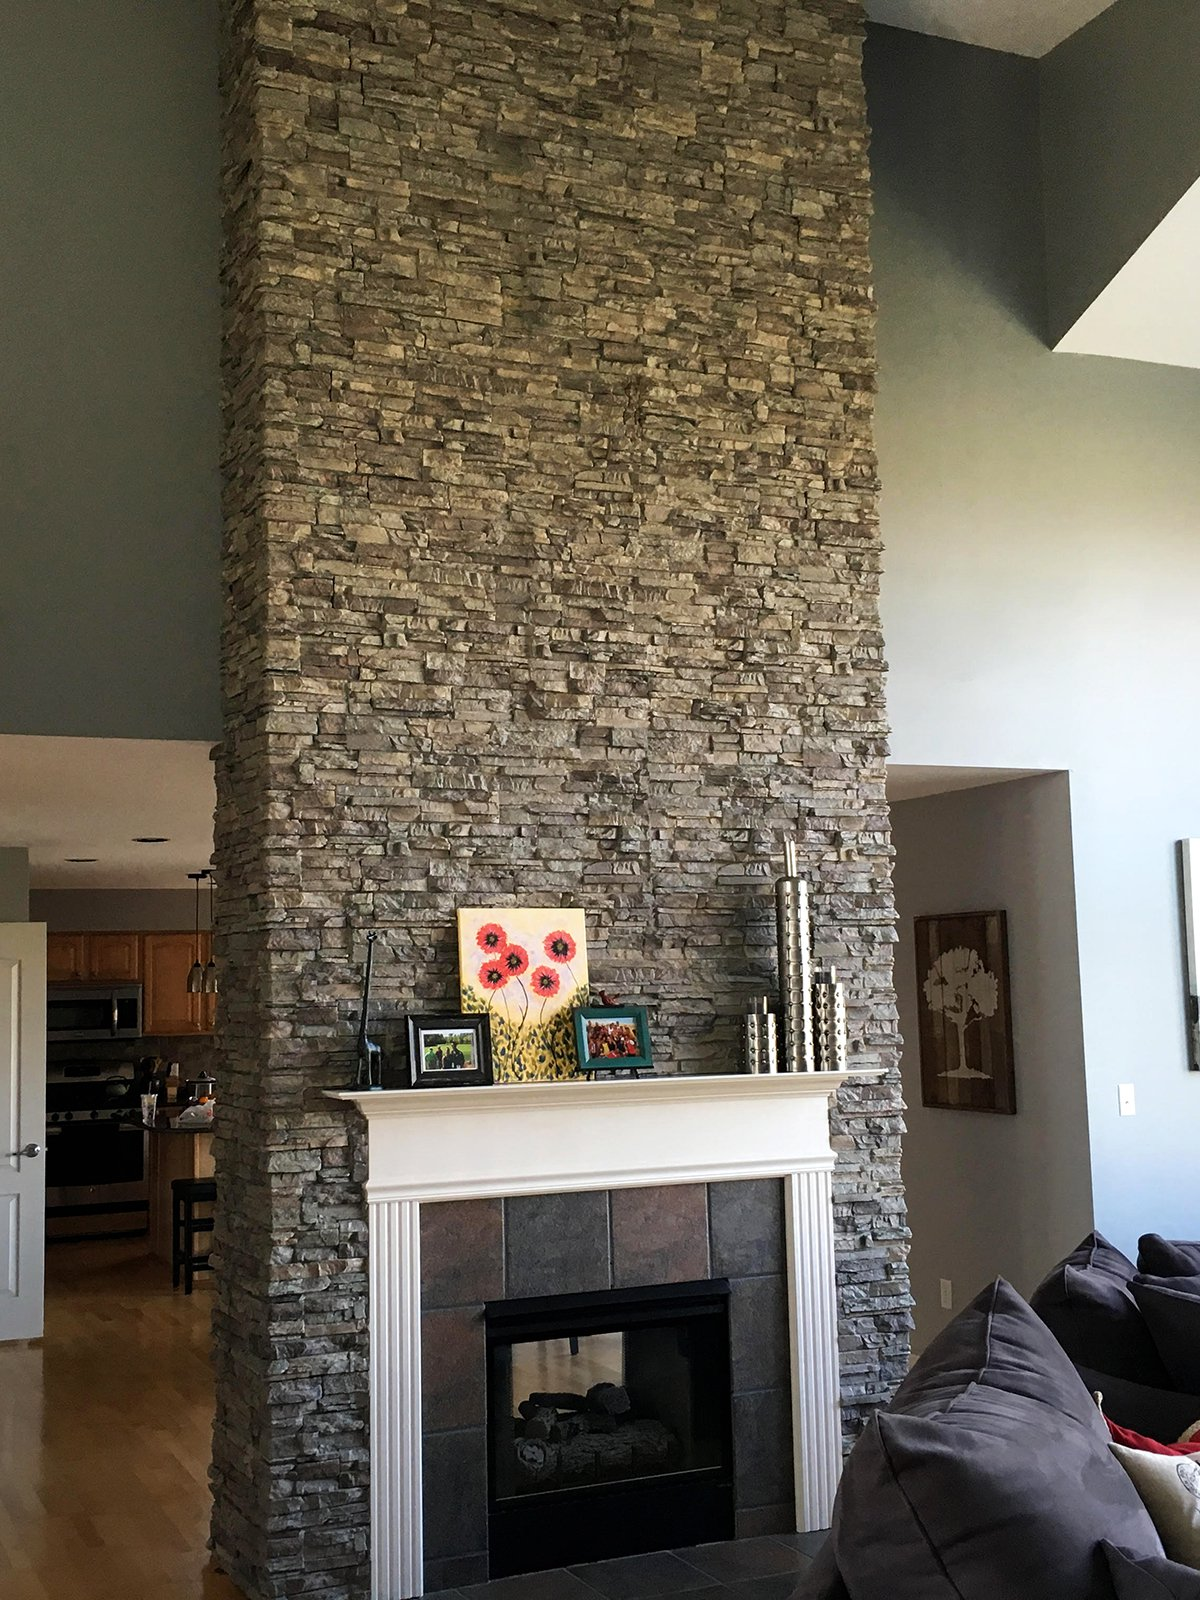 chic interior paint ideas and stone fireplace ideas with white fireplace mantle also cushioned sofa plus wood flooring for modern living room design mantel shelf ideas stone mantelpiece rustic outdoor